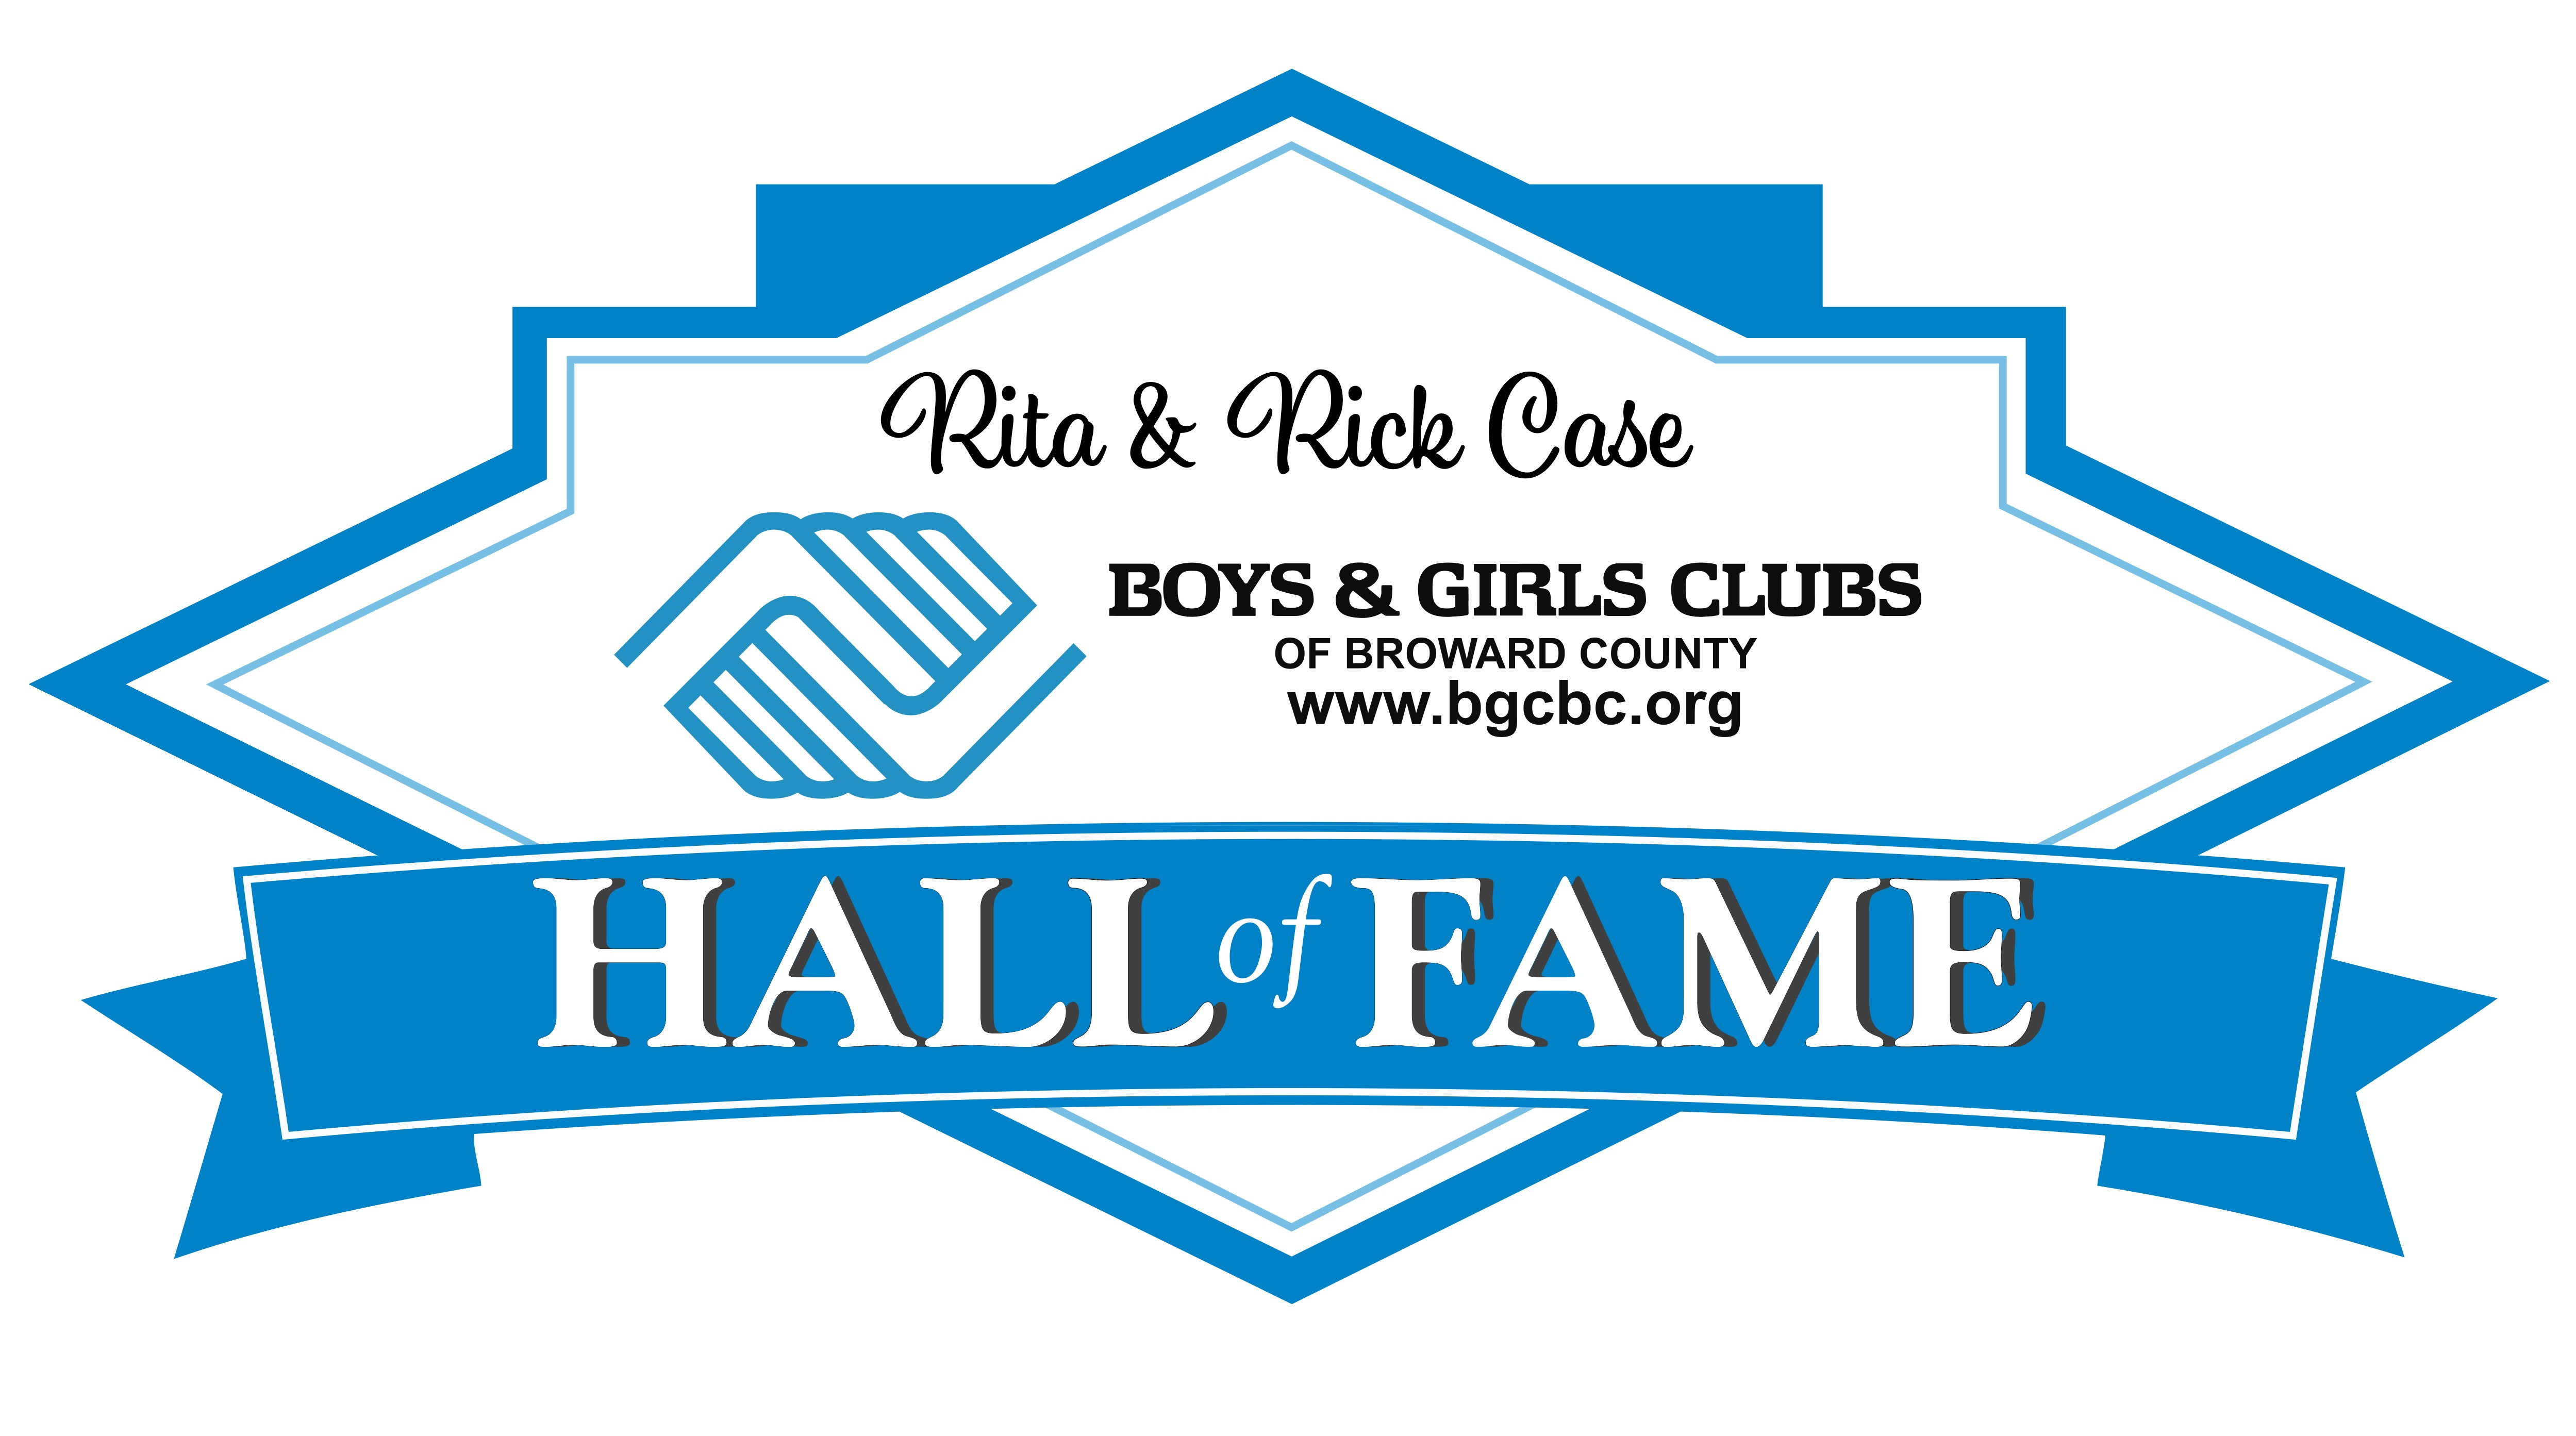 https://www.bgcbc.org/hall-of-fame